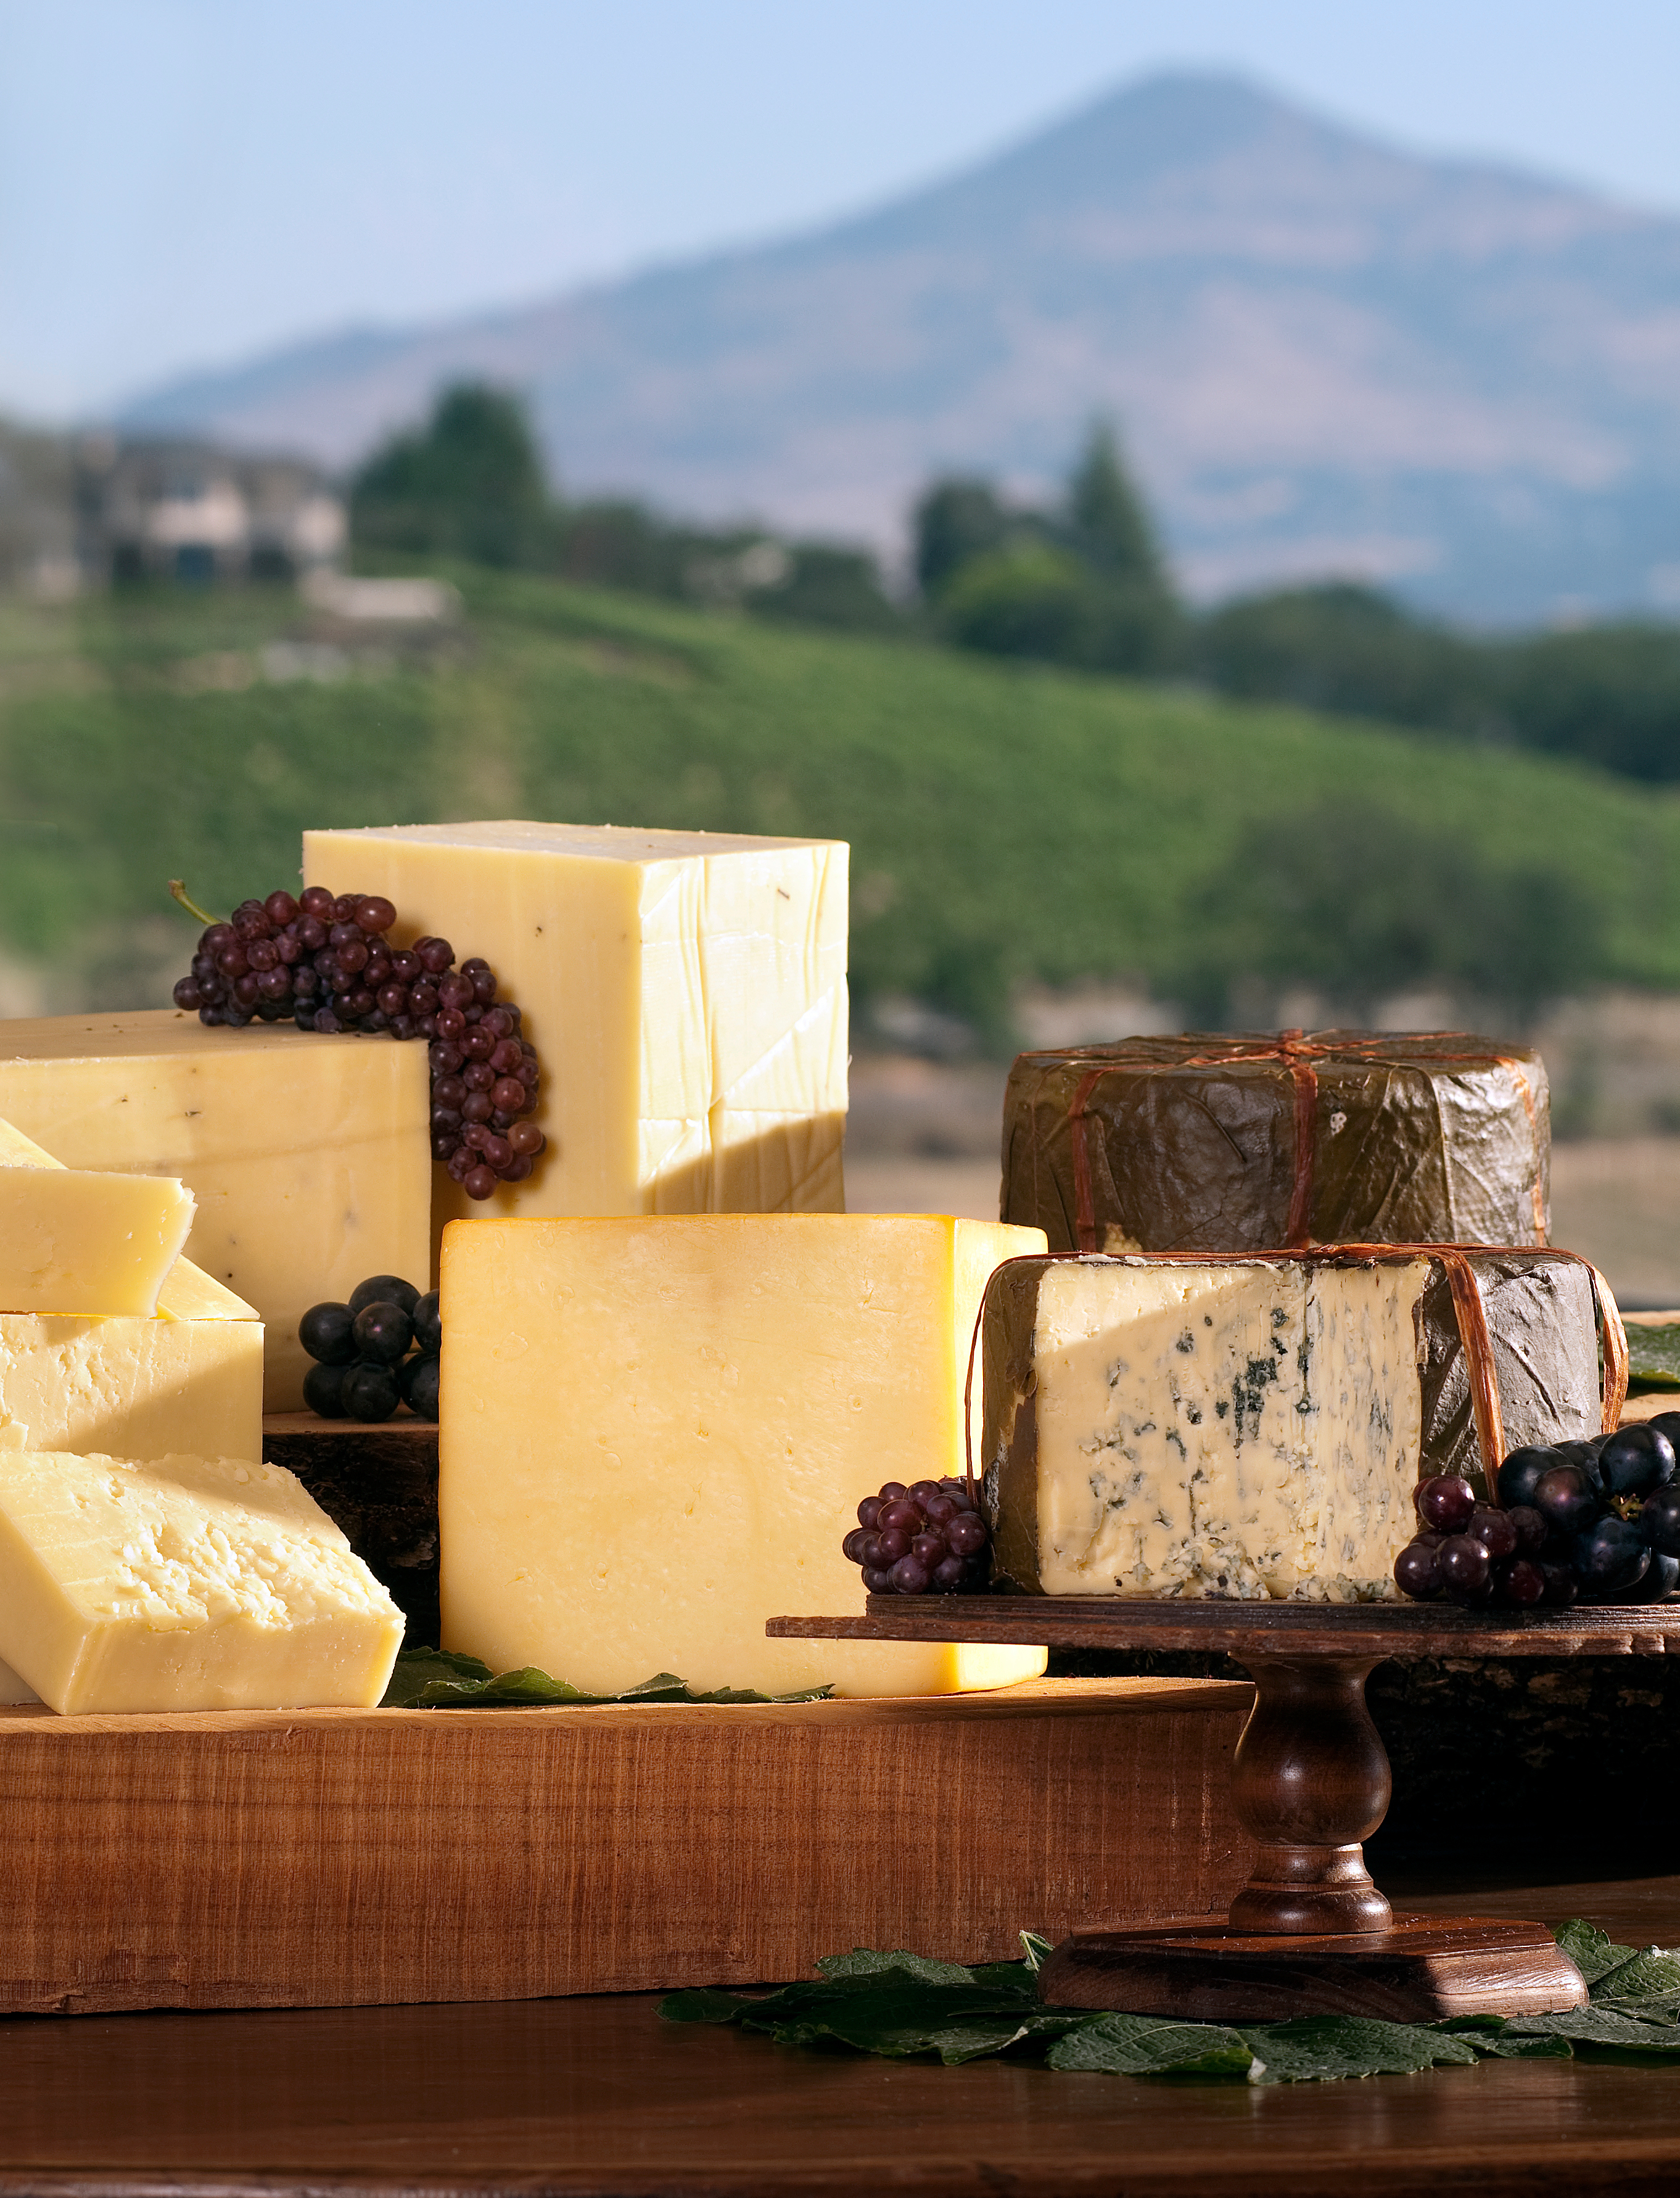 close up of cheese board with cheese and grapes with mountain in background